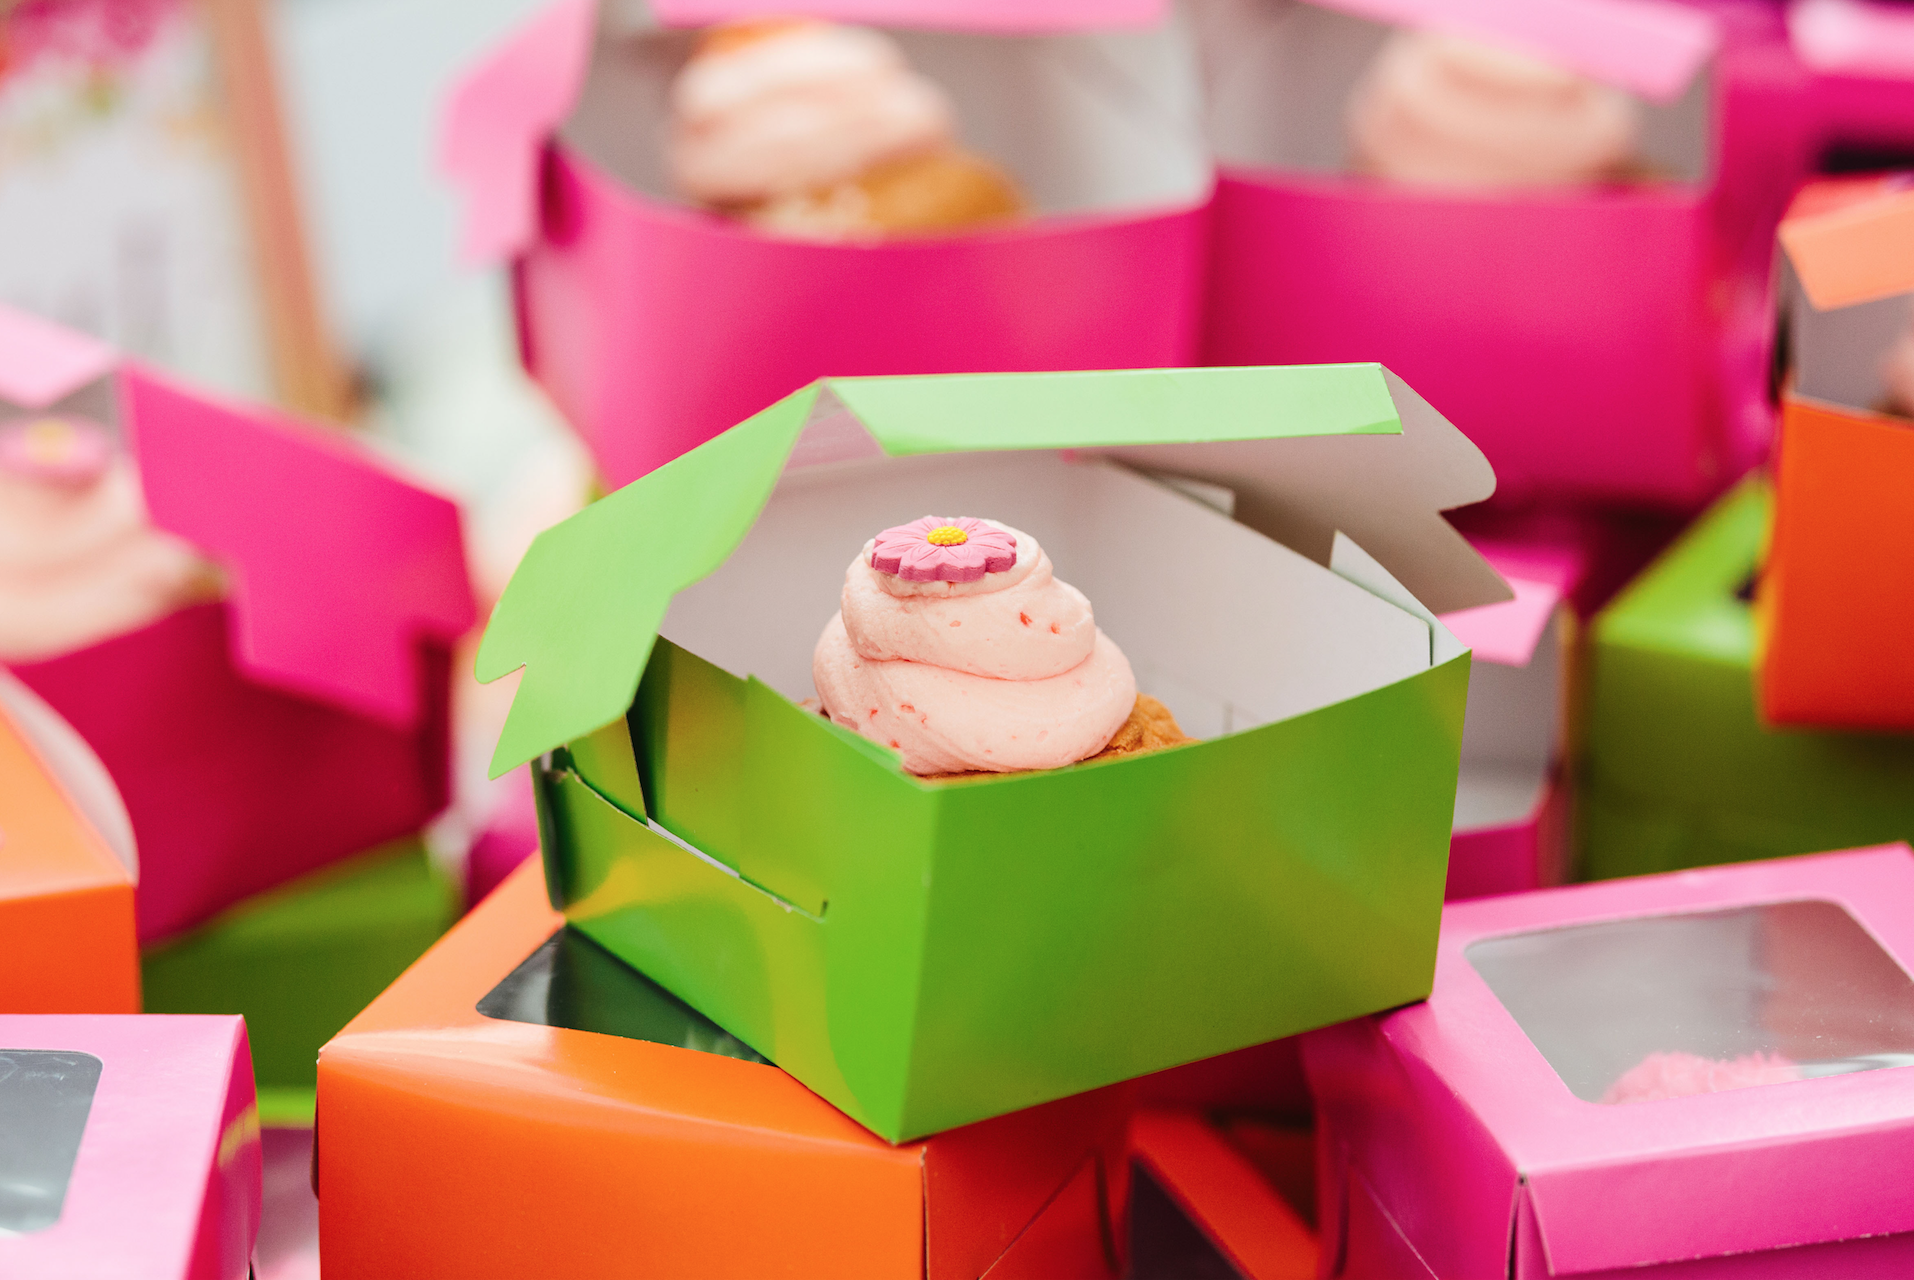 Cupcakes boxed in bright colors.